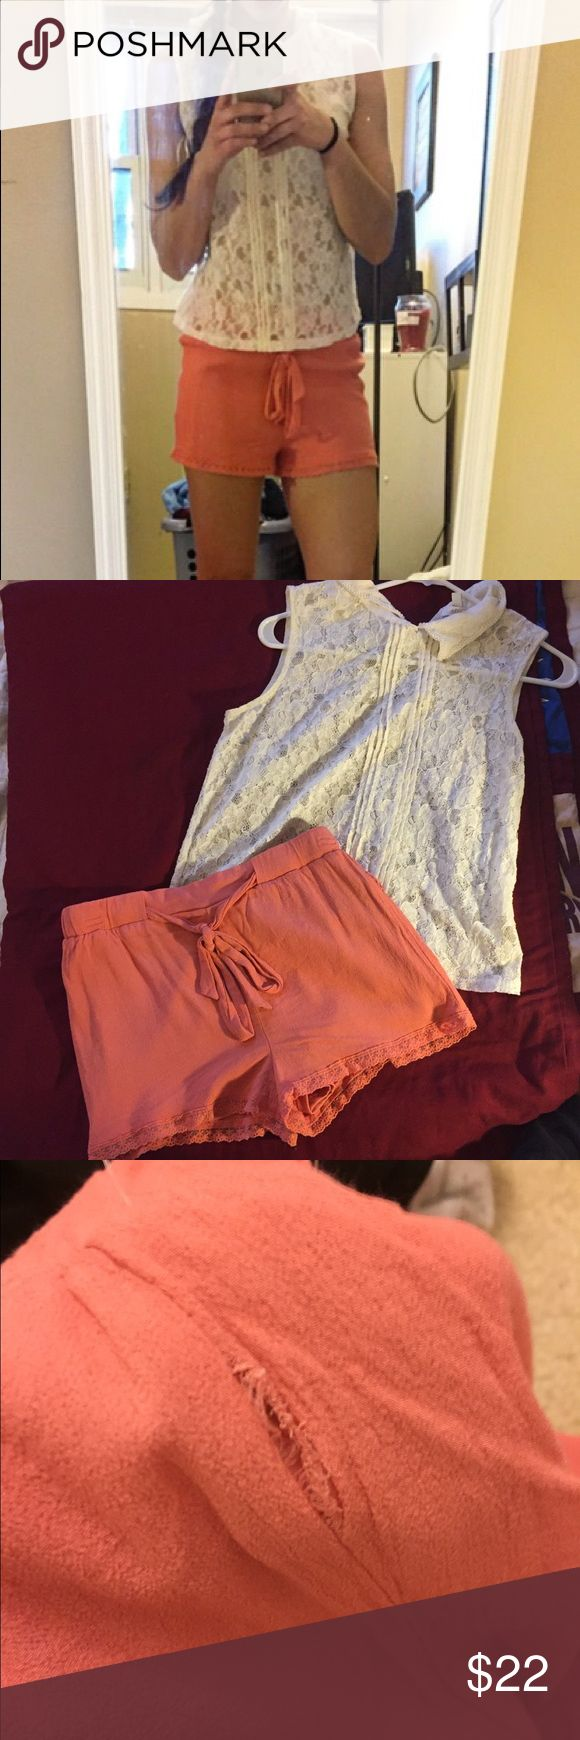 Lace Shirt with Coral rayon shorts Shorts have tear in the side, it's not noticeable! Perfect for an open house, party, or night out! ***selling together*** shirt labeled L but fits as S Forever 21 Tops Blouses